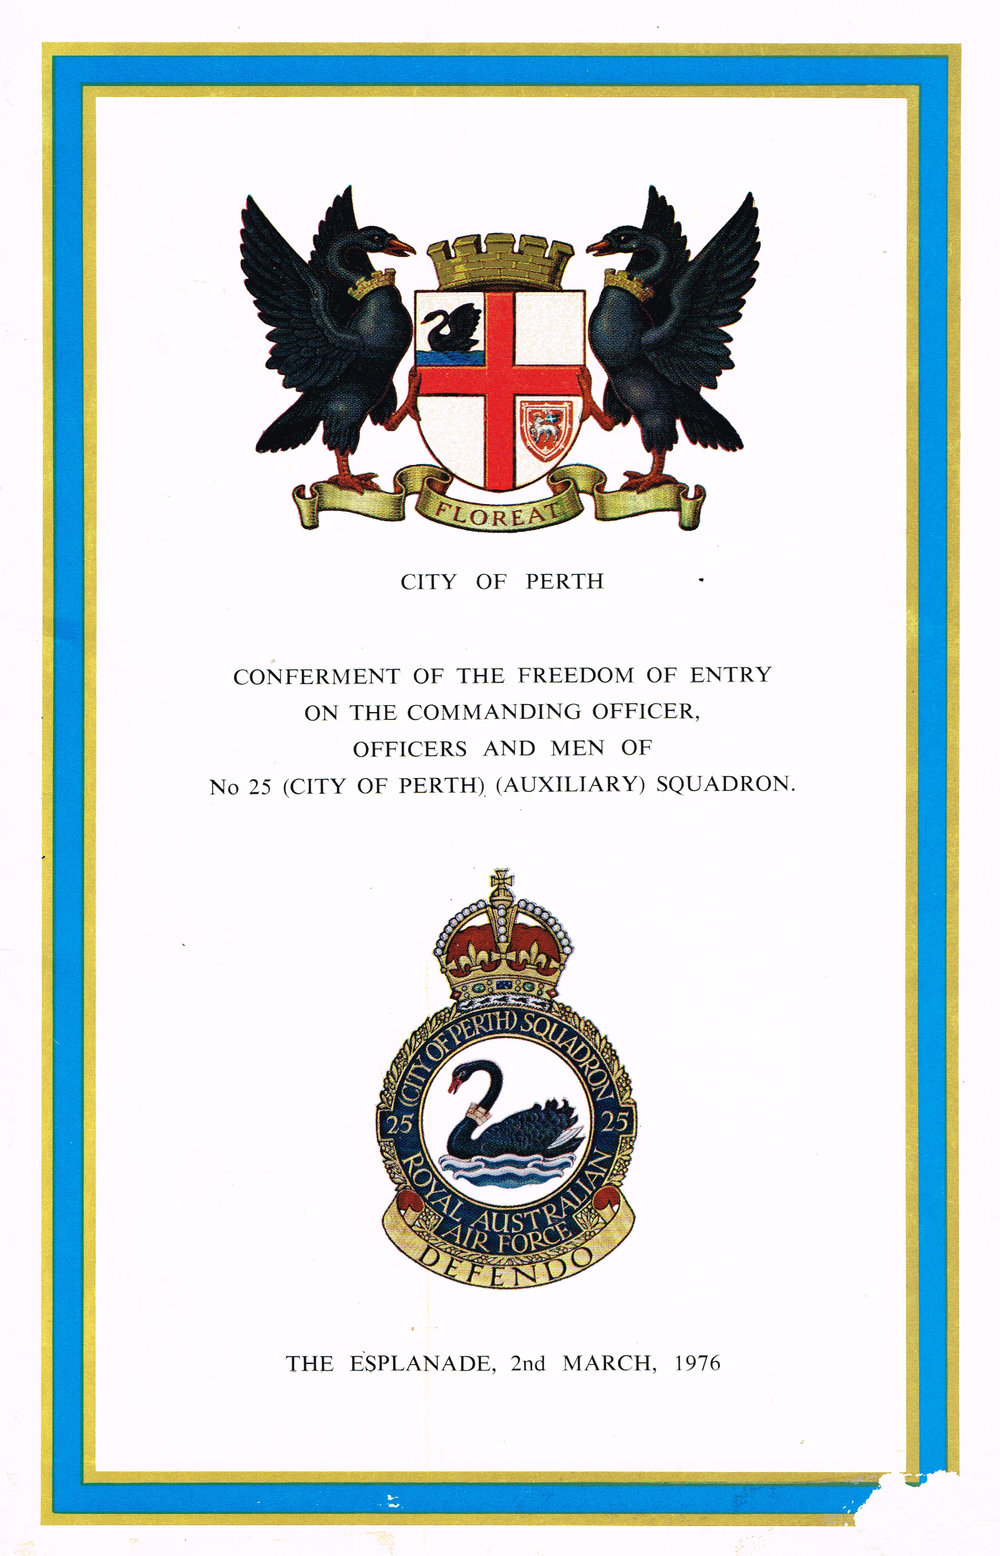 Conferment of the Freedom of Entry on the Cammanding Officer, Officers and Men of No 25 (City of Perth) (Auxiliary) Squadron City of Perth